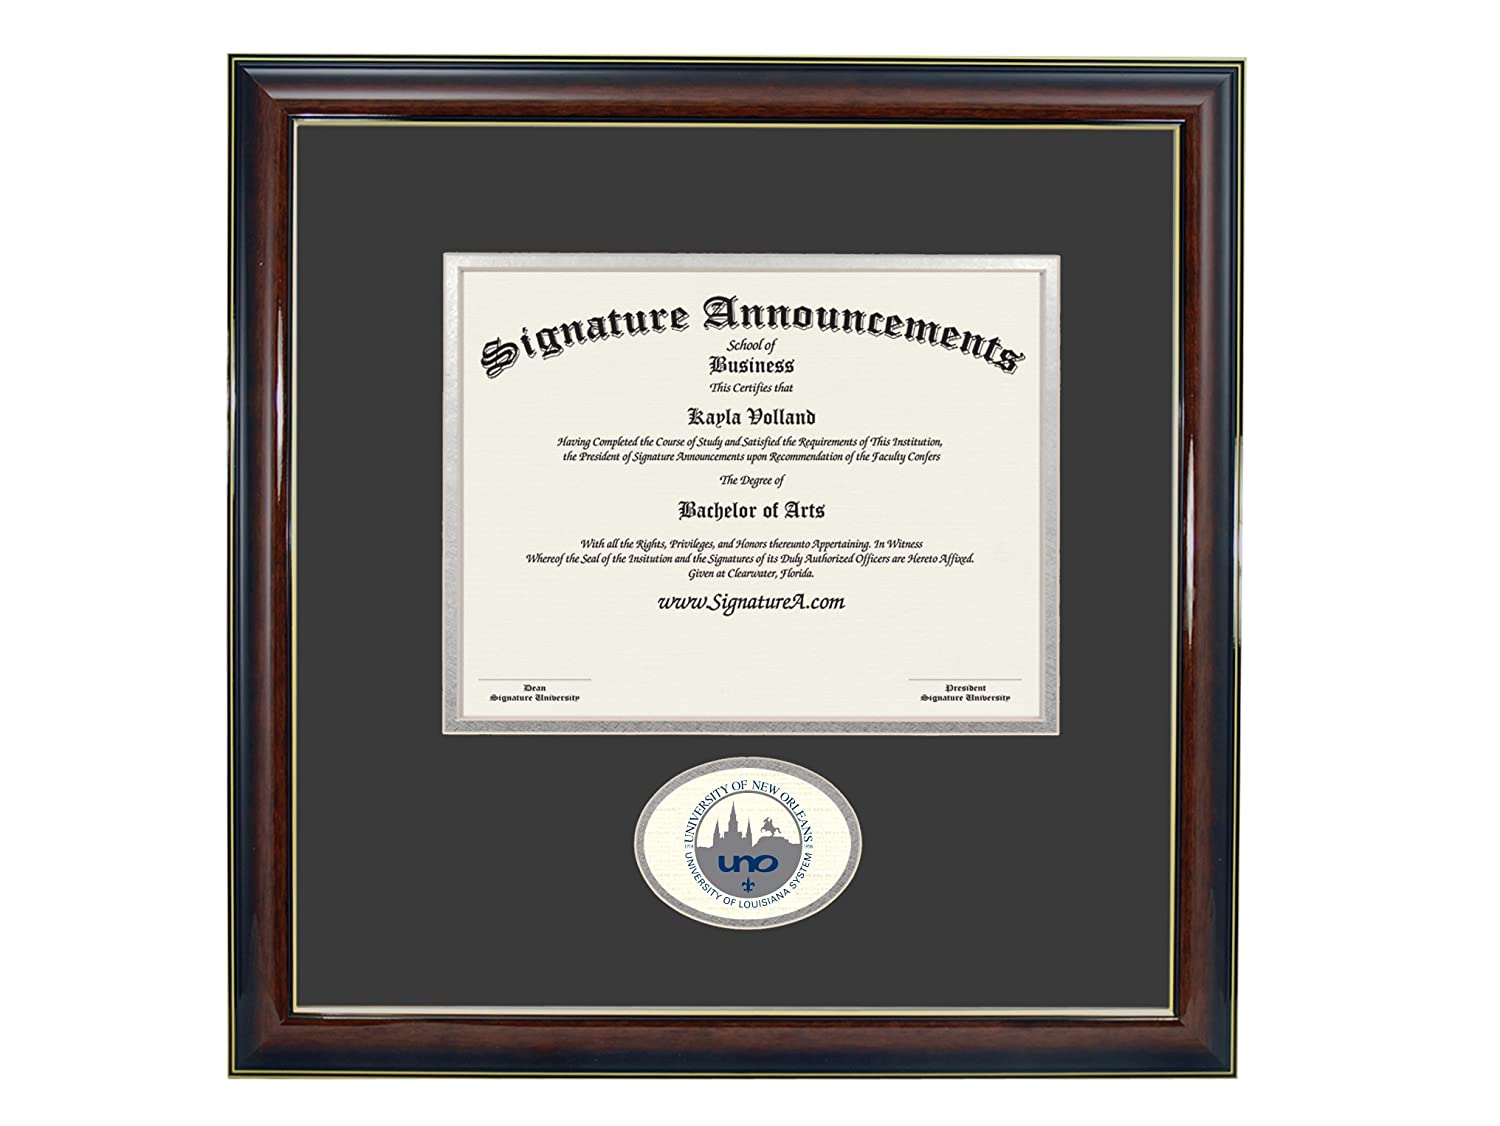 Signature Announcements University-of-New-Orleans Undergraduate Professional//Doctor Sculpted Foil Seal Graduation Diploma Frame 16 x 16 Gold Accent Gloss Mahogany